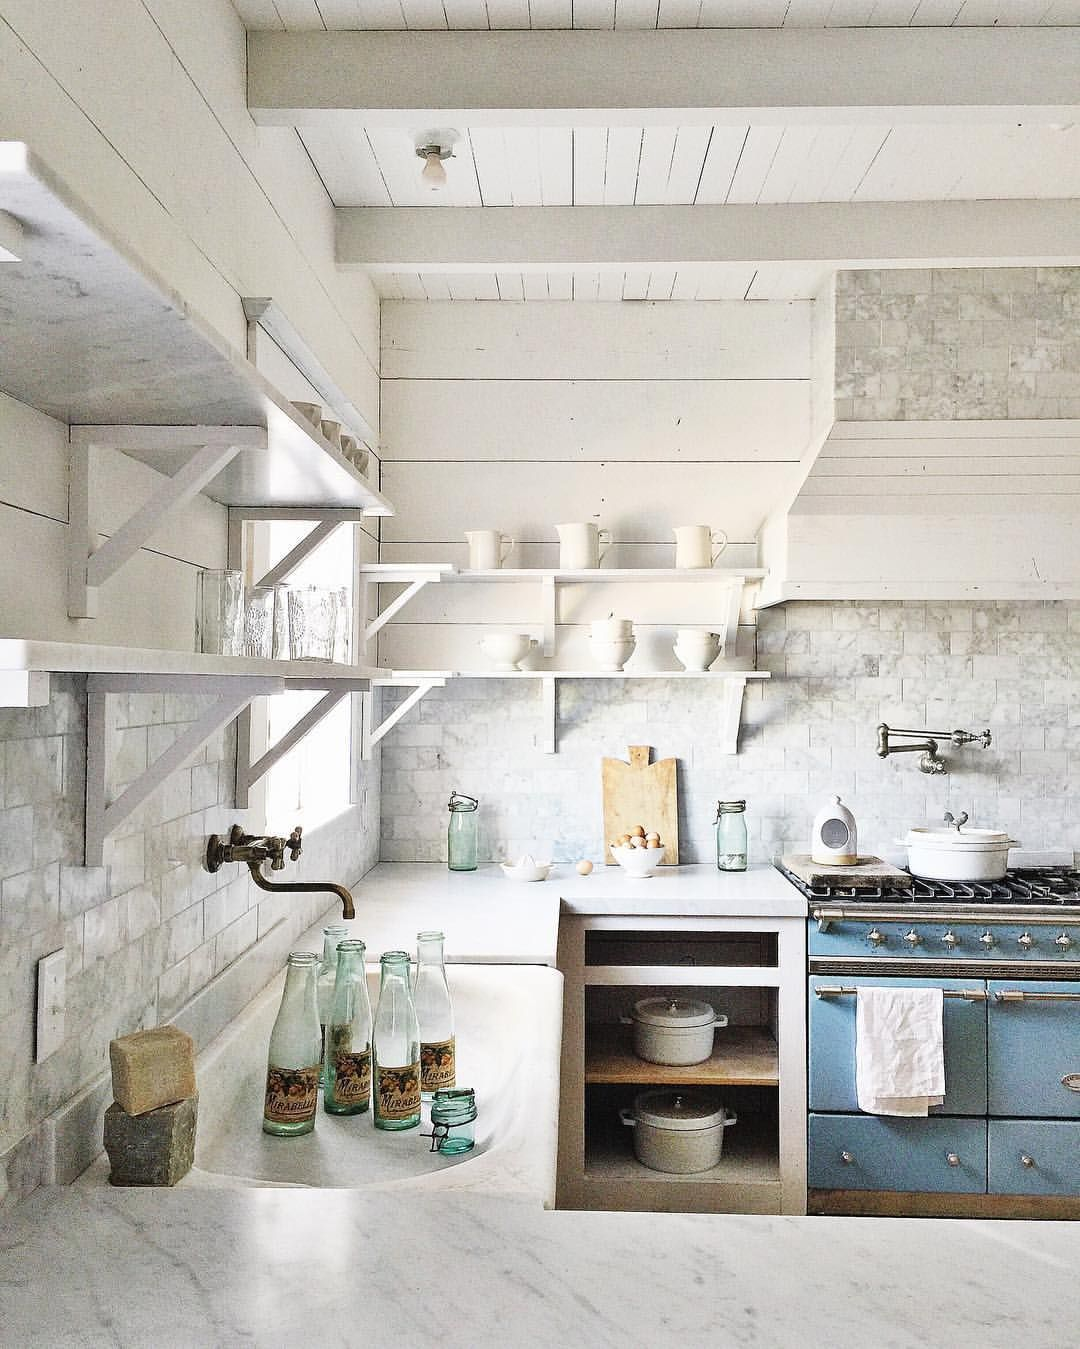 30 Blue and White Kitchens to Inspire!